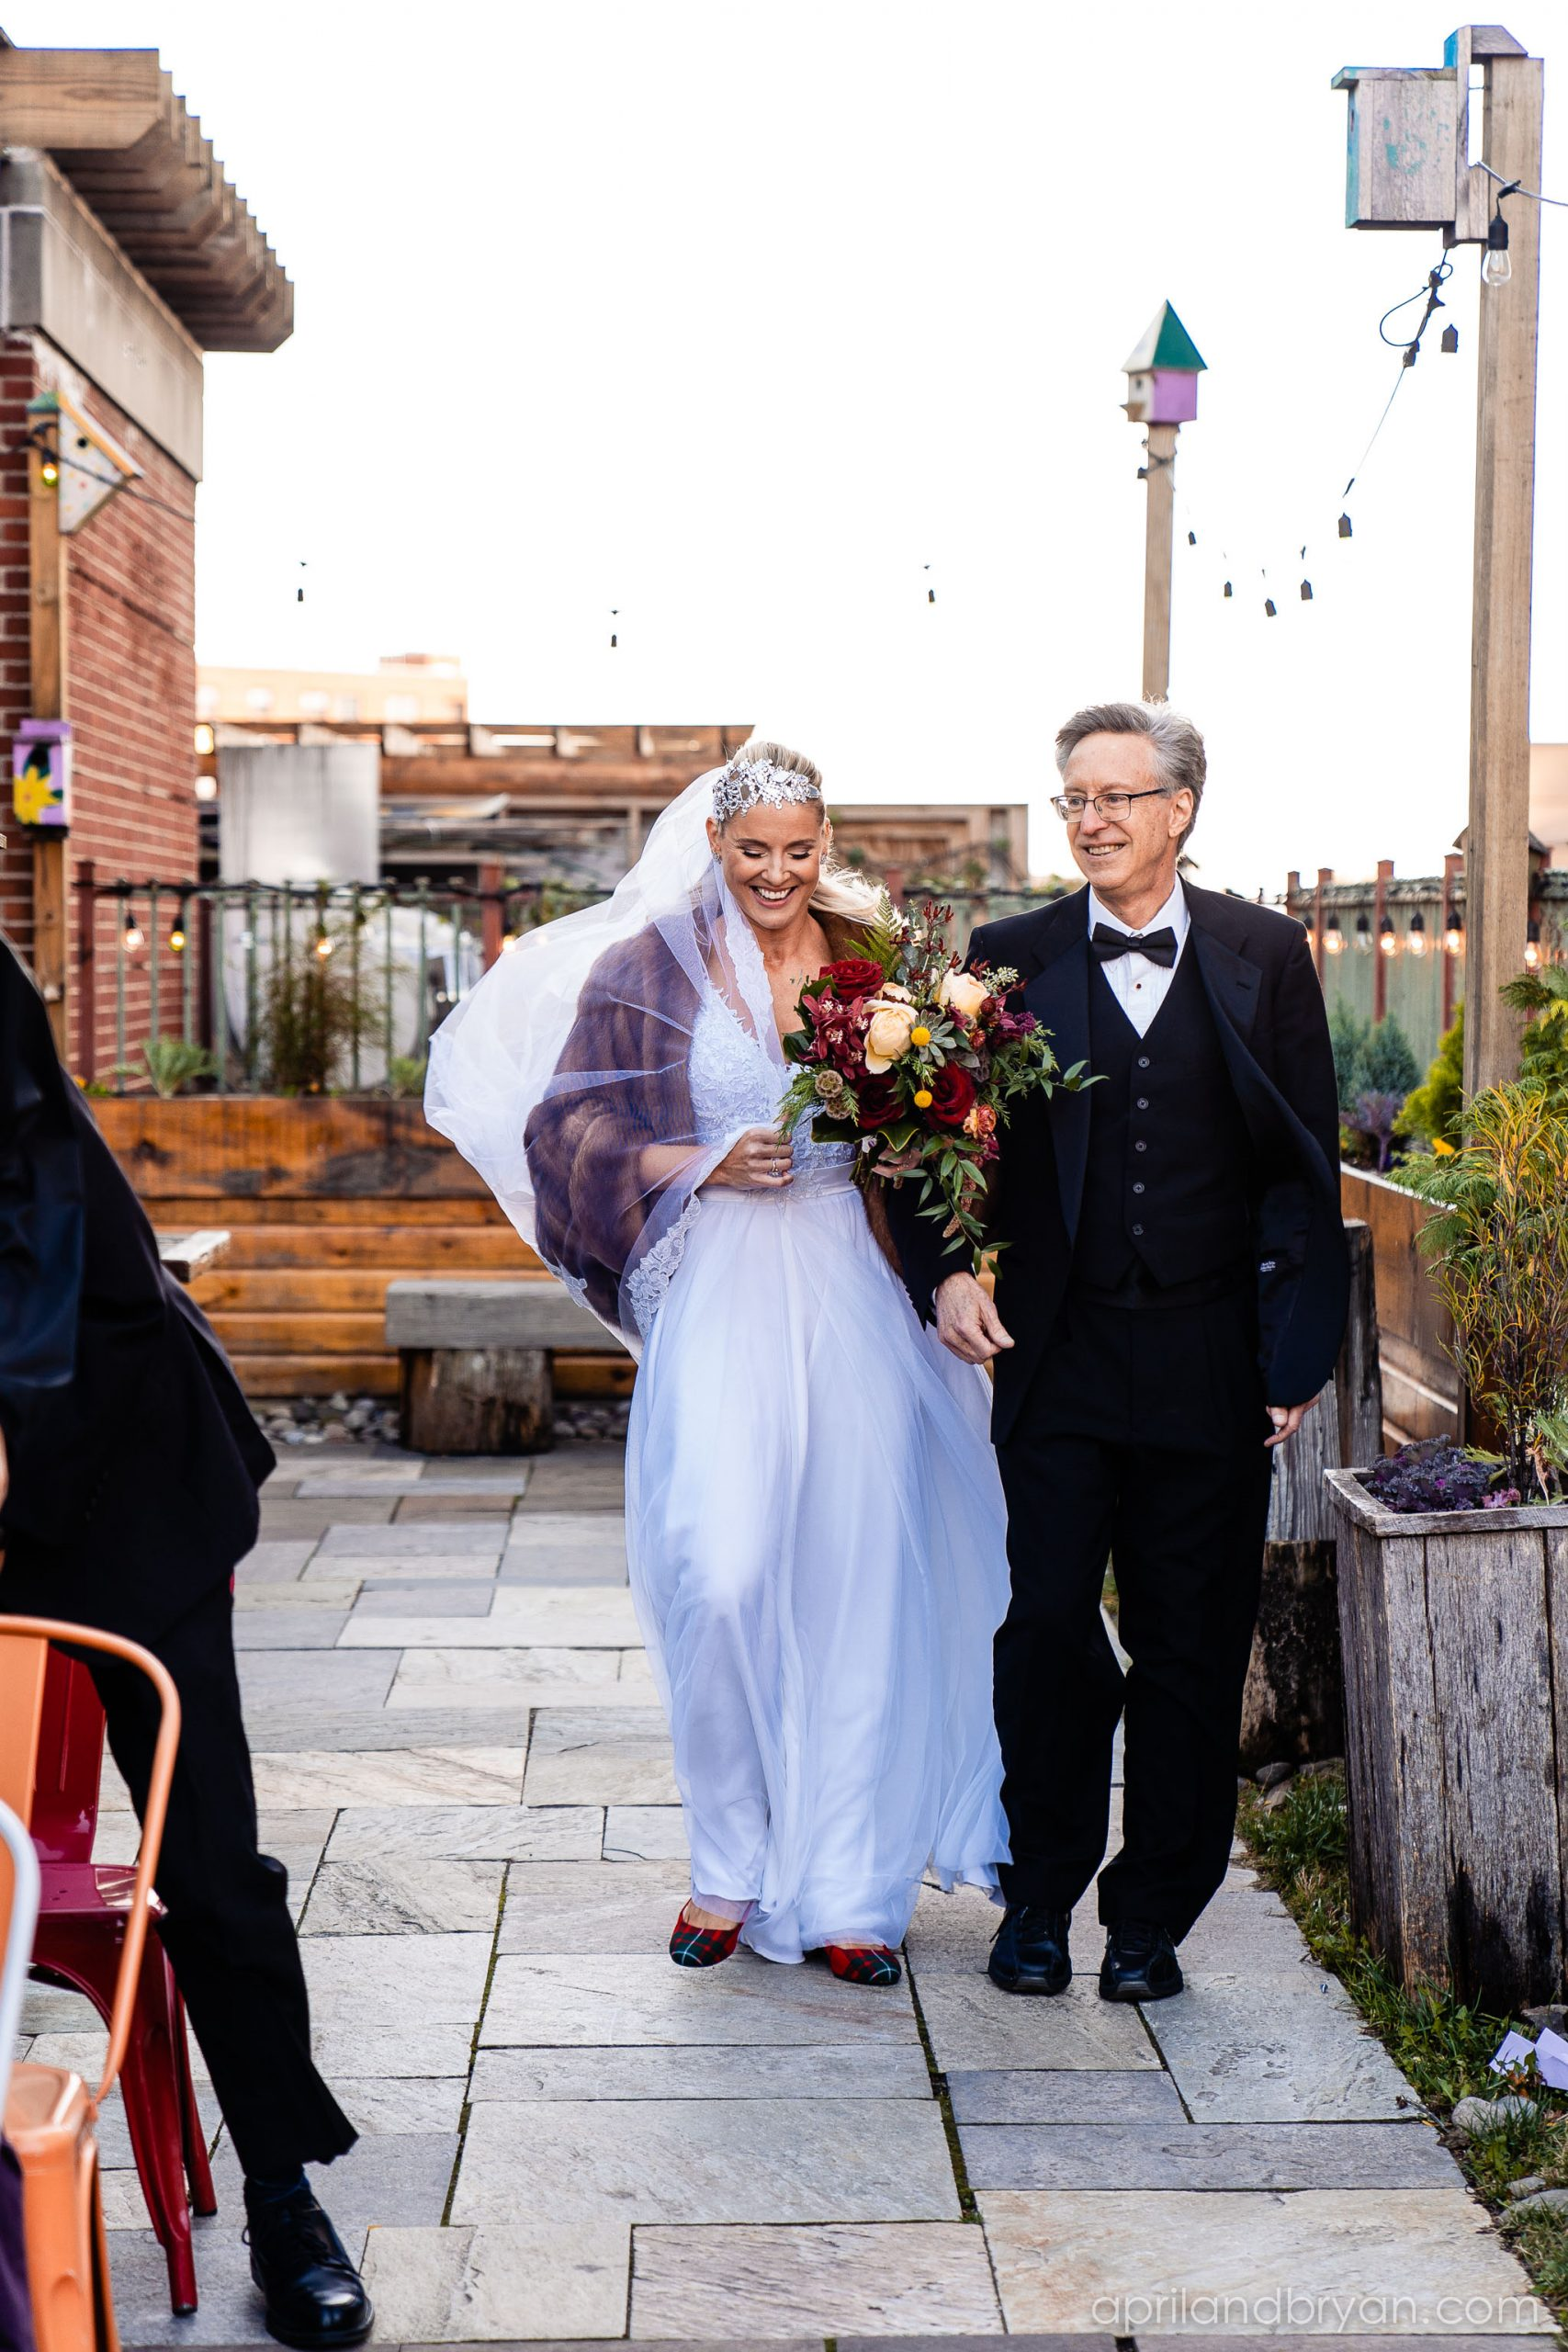 Father of the bride walks her down the isle in plaid flats and a fur shaw. Nicholas and Rebecca Fasnacht tie the not at Tellus360 on November 1, 2019. Captured by April & Bryan Photography and featured on Dream Weddings.